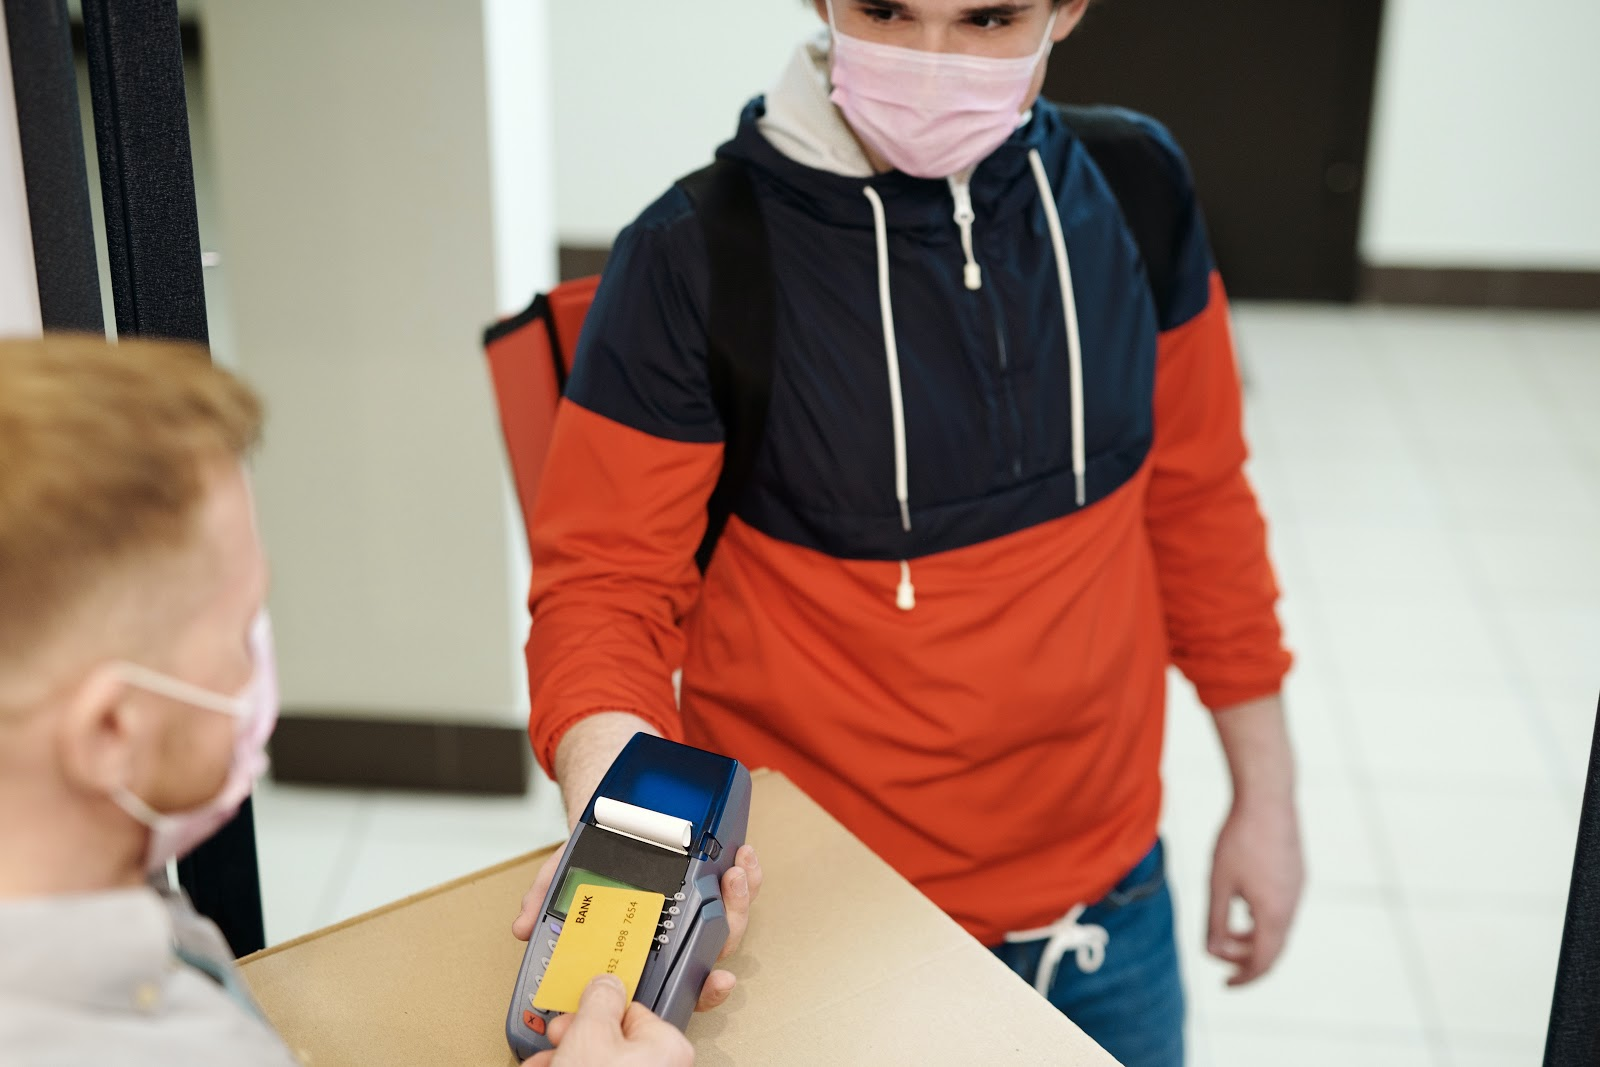 Things To Keep In Mind When Receiving Food Deliveries During The Coronavirus